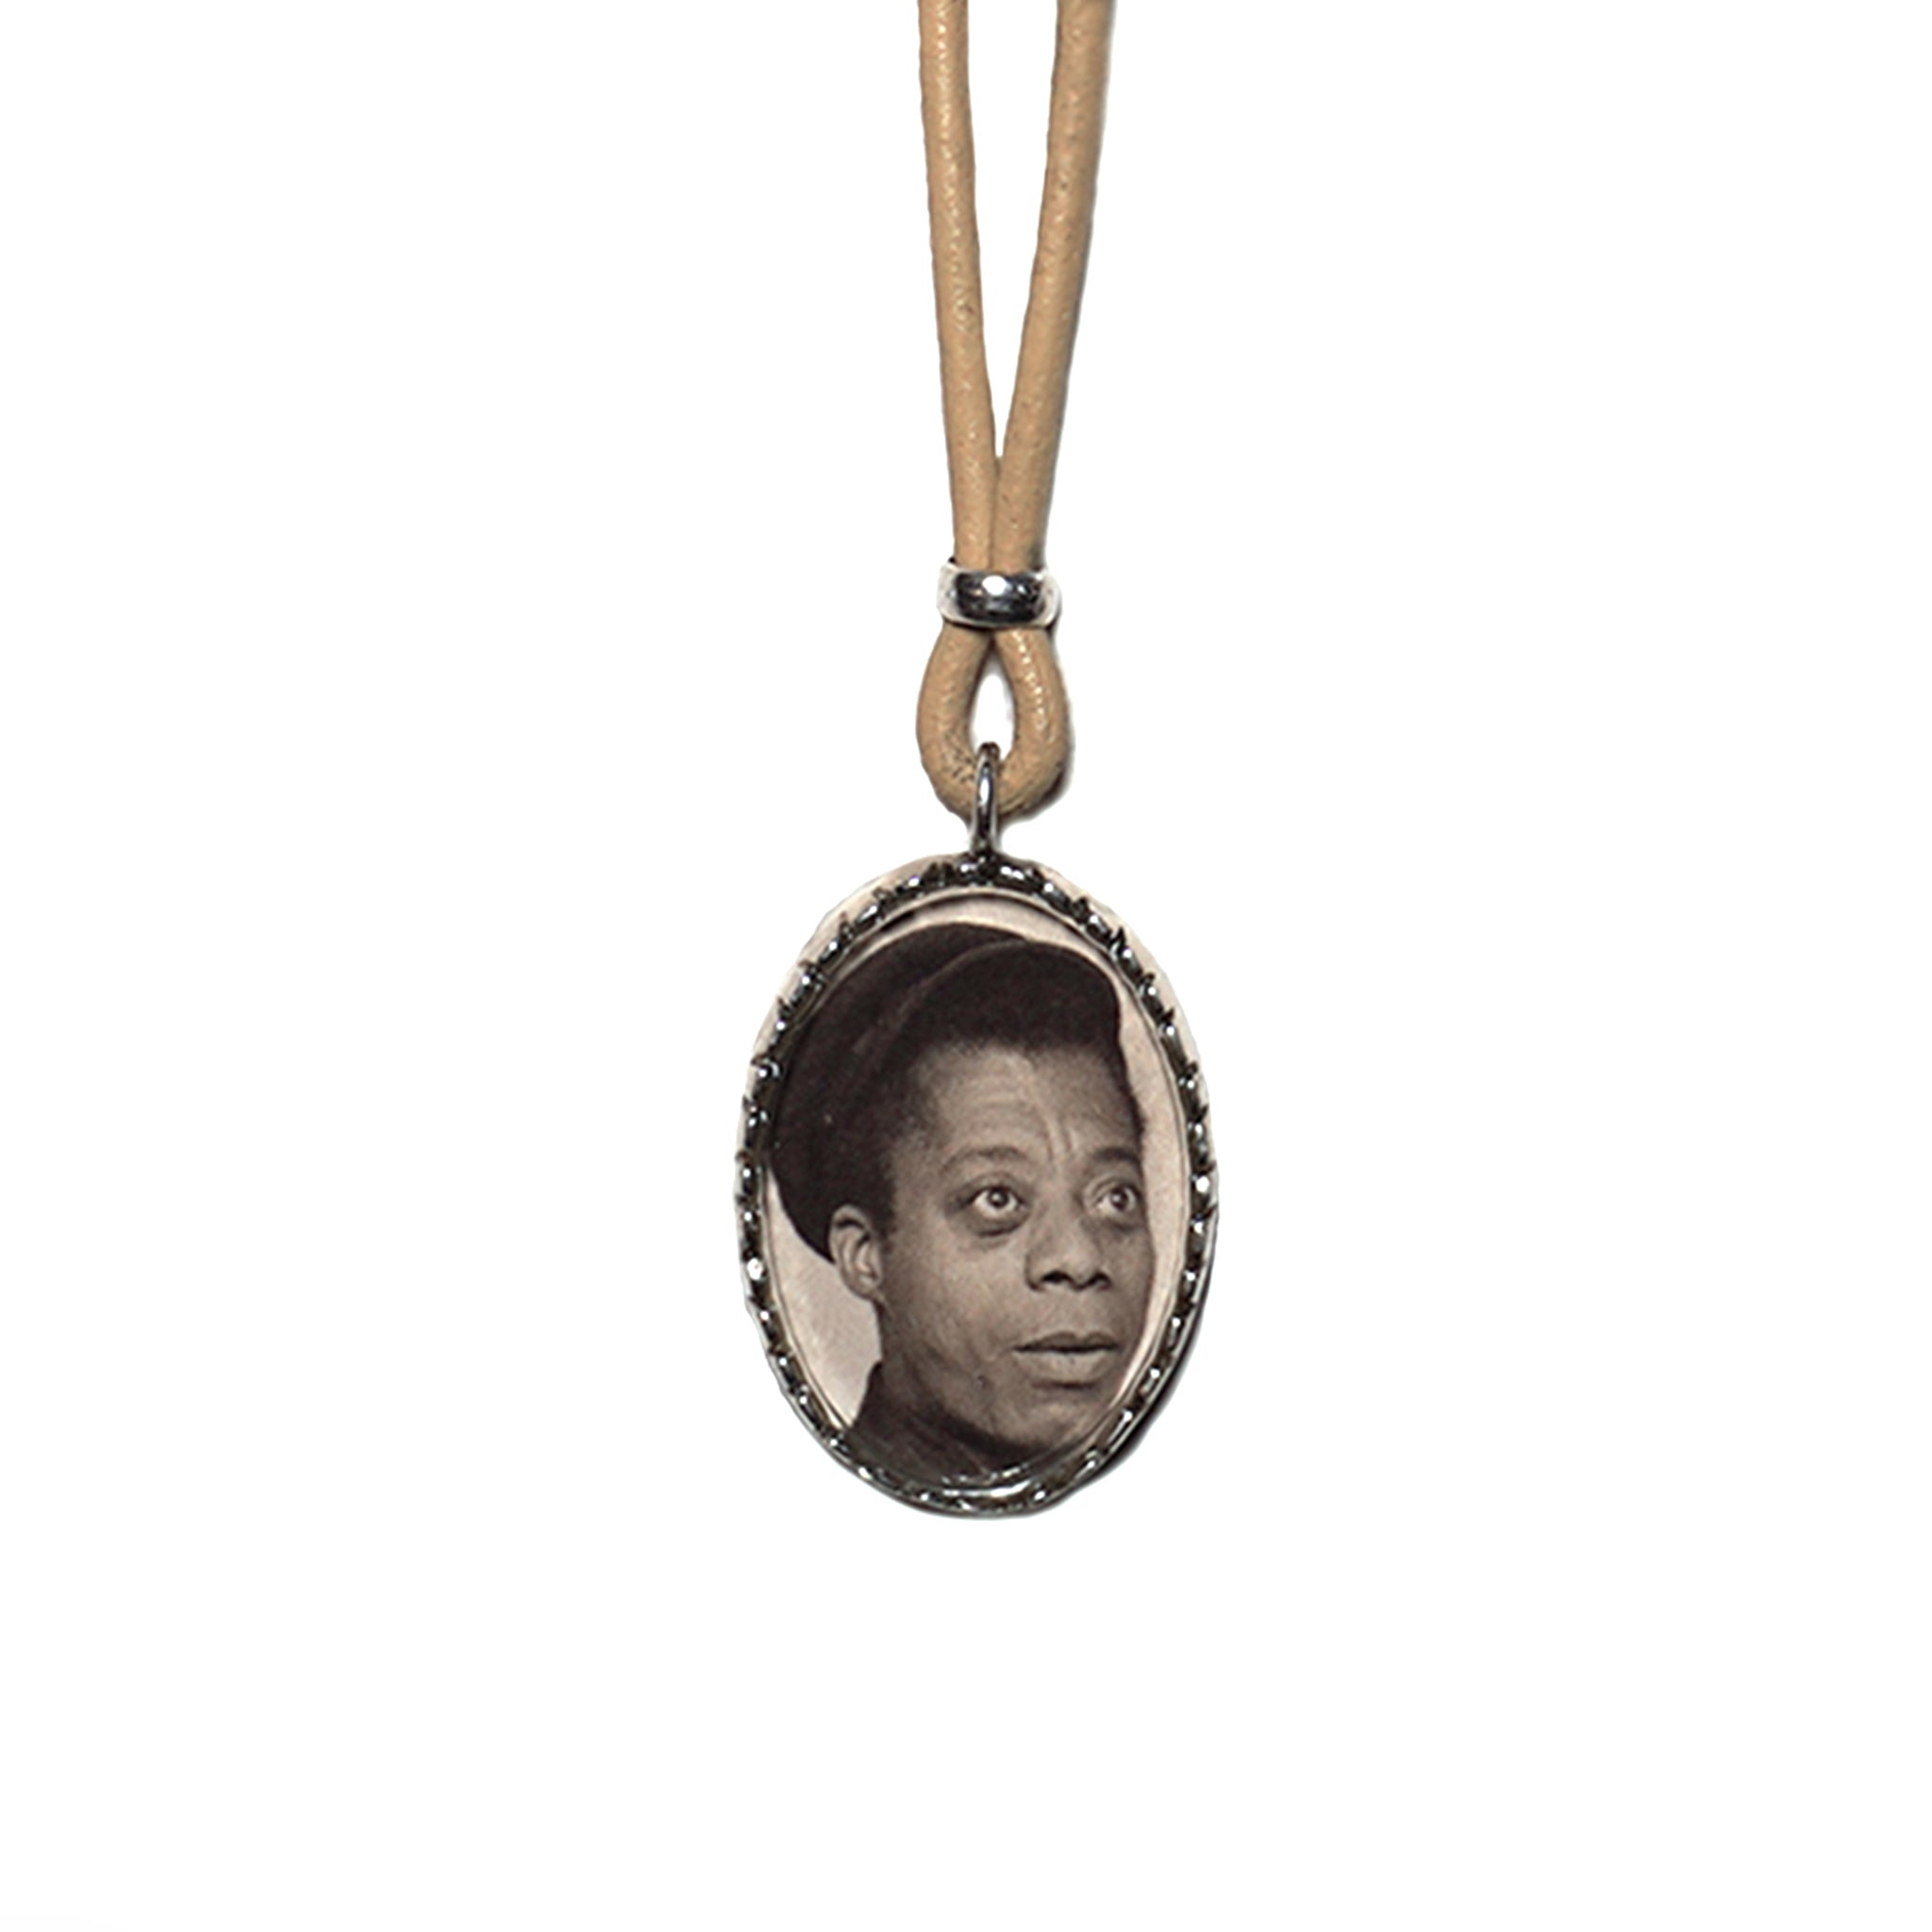 JAMES BALDWIN (G)ENIUS CHAIN